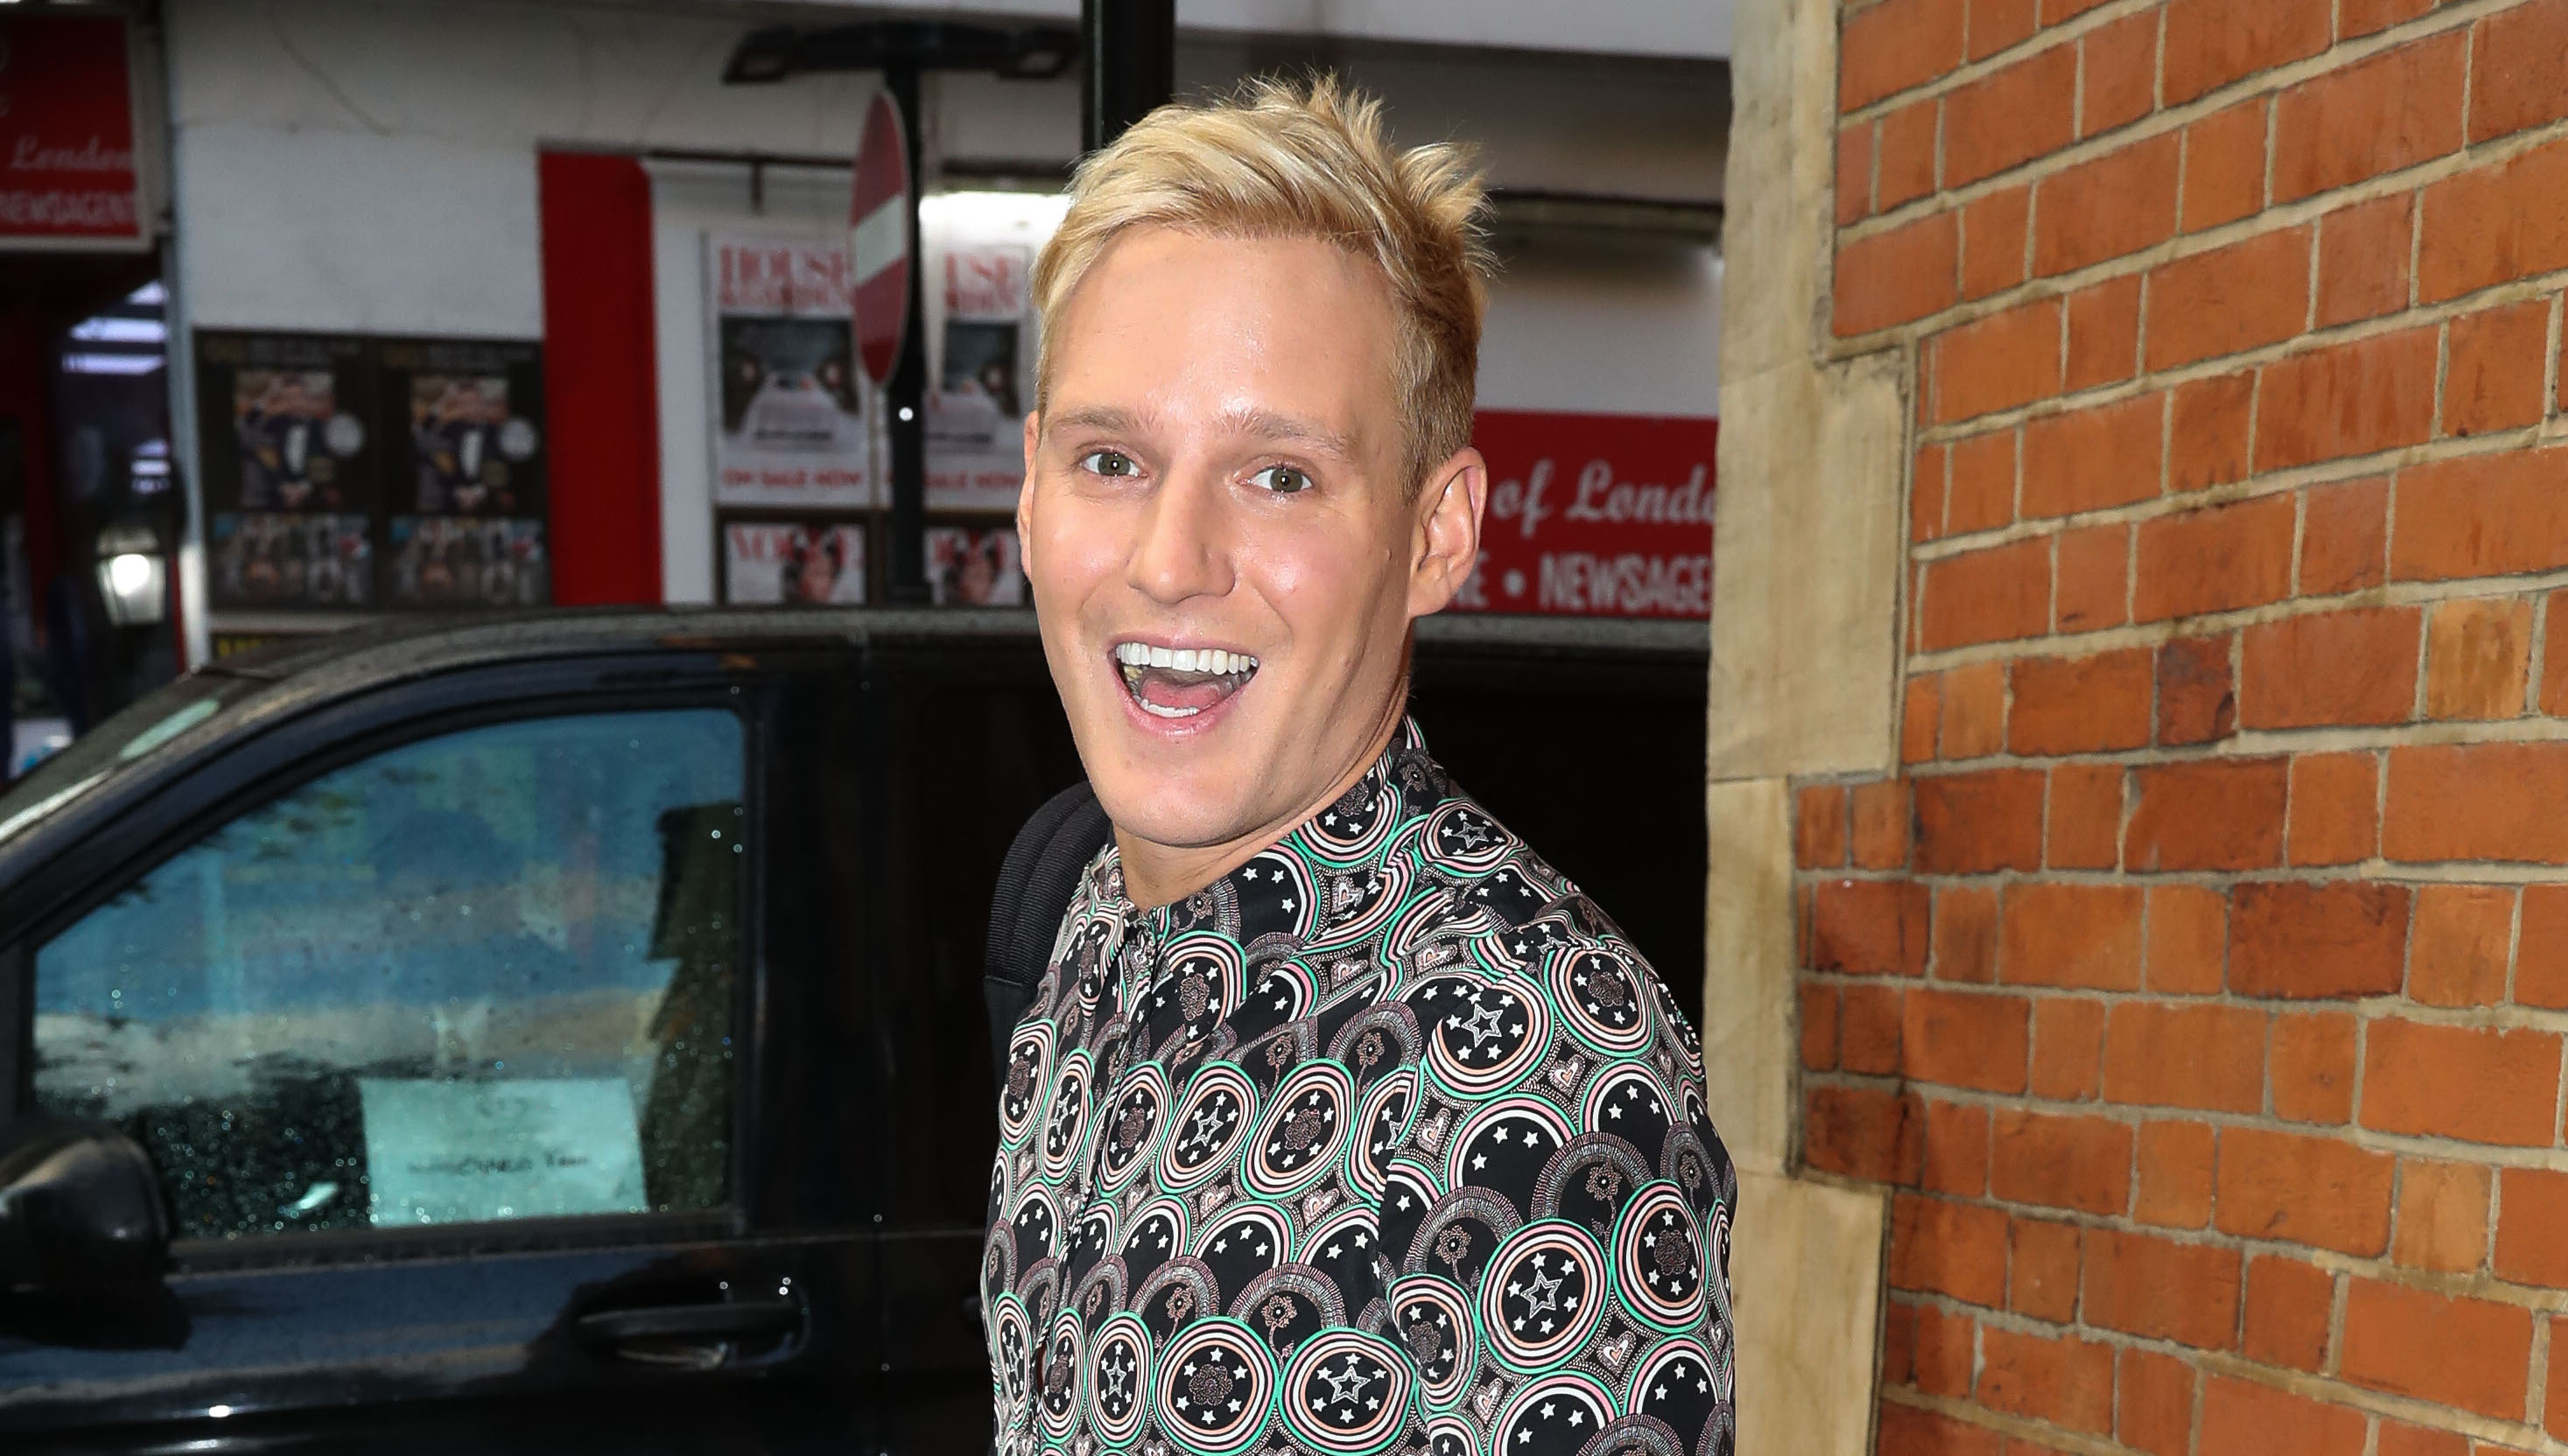 Strictly: Viewers praise Jamie Laing as he congratulates Kelvin Fletcher on Glitterball win